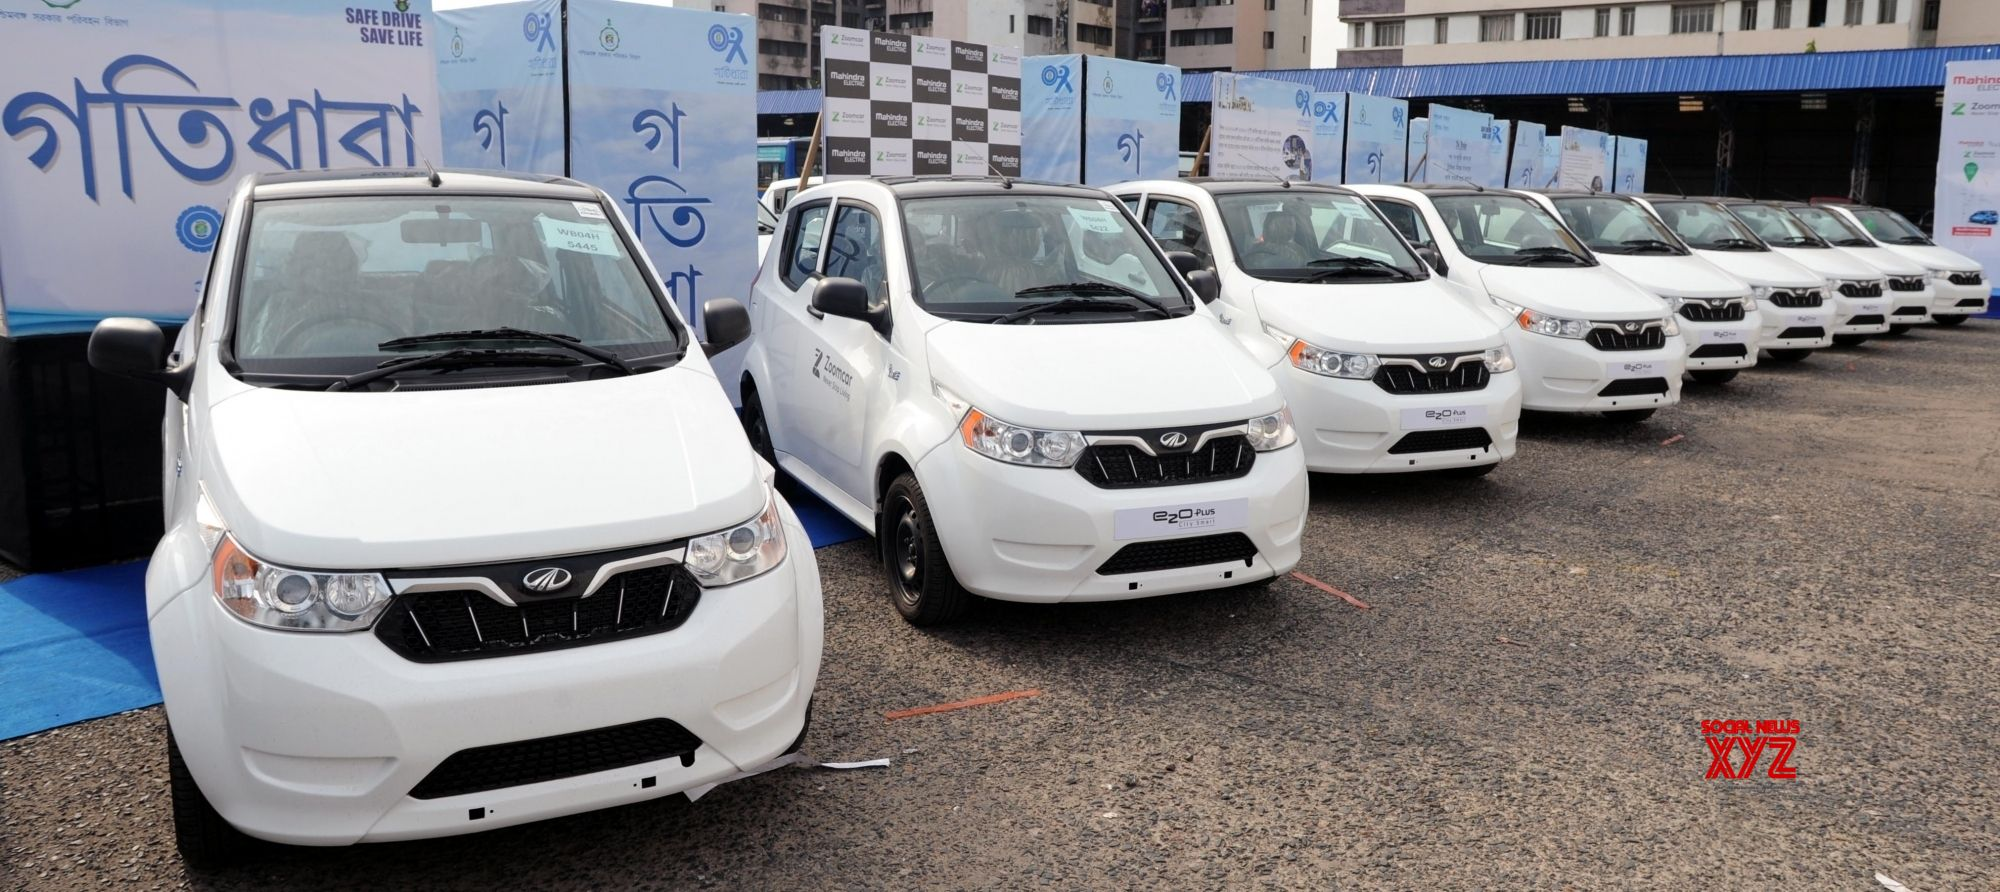 Budgetary push: Sustained charge required to accelerate EV growth in India